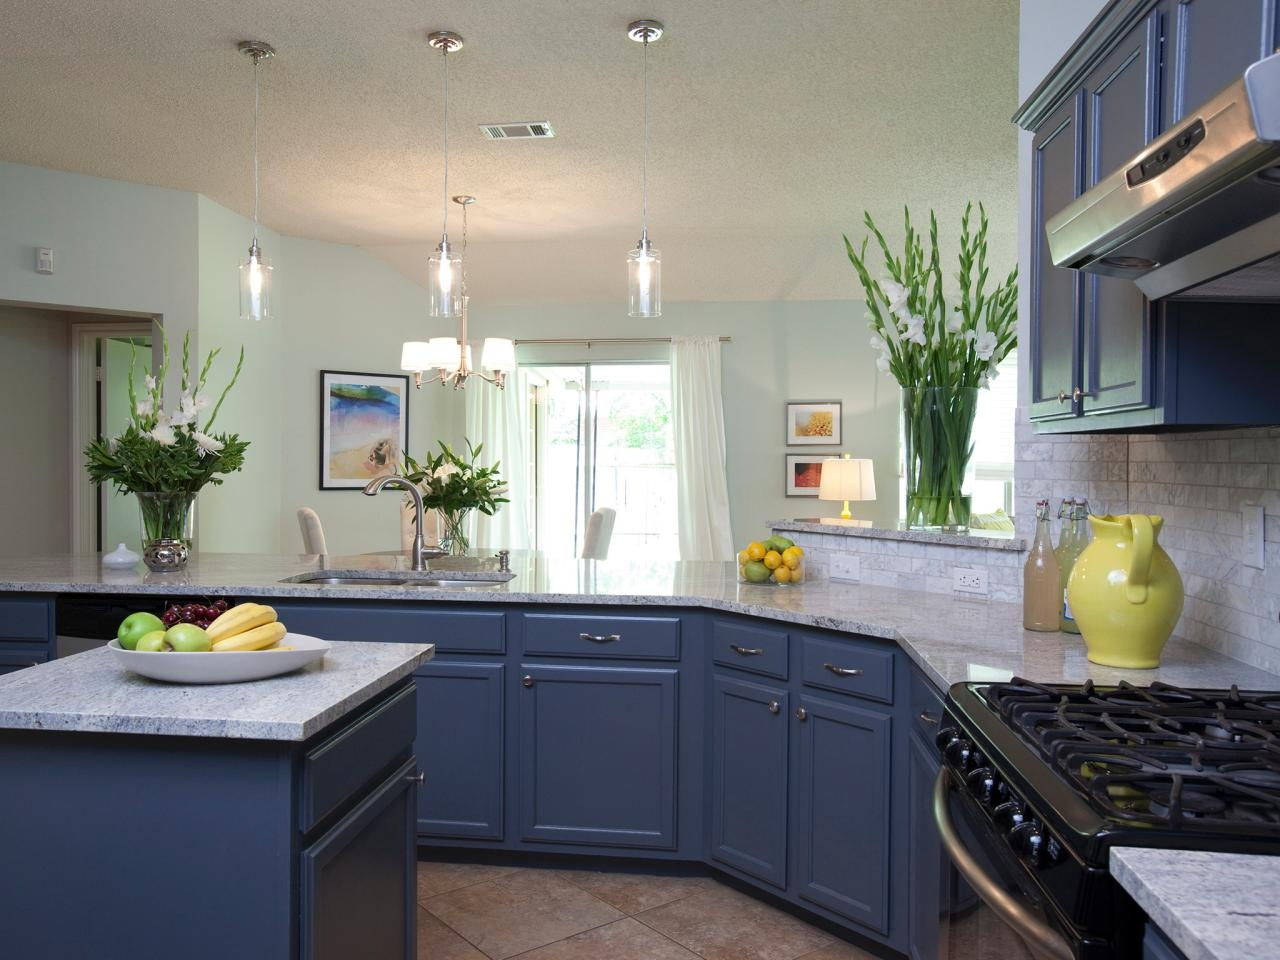 Stunning Design Of The Grey Marble Tops Ideas With Kitchen Island And Blue Kitchen Cabinets